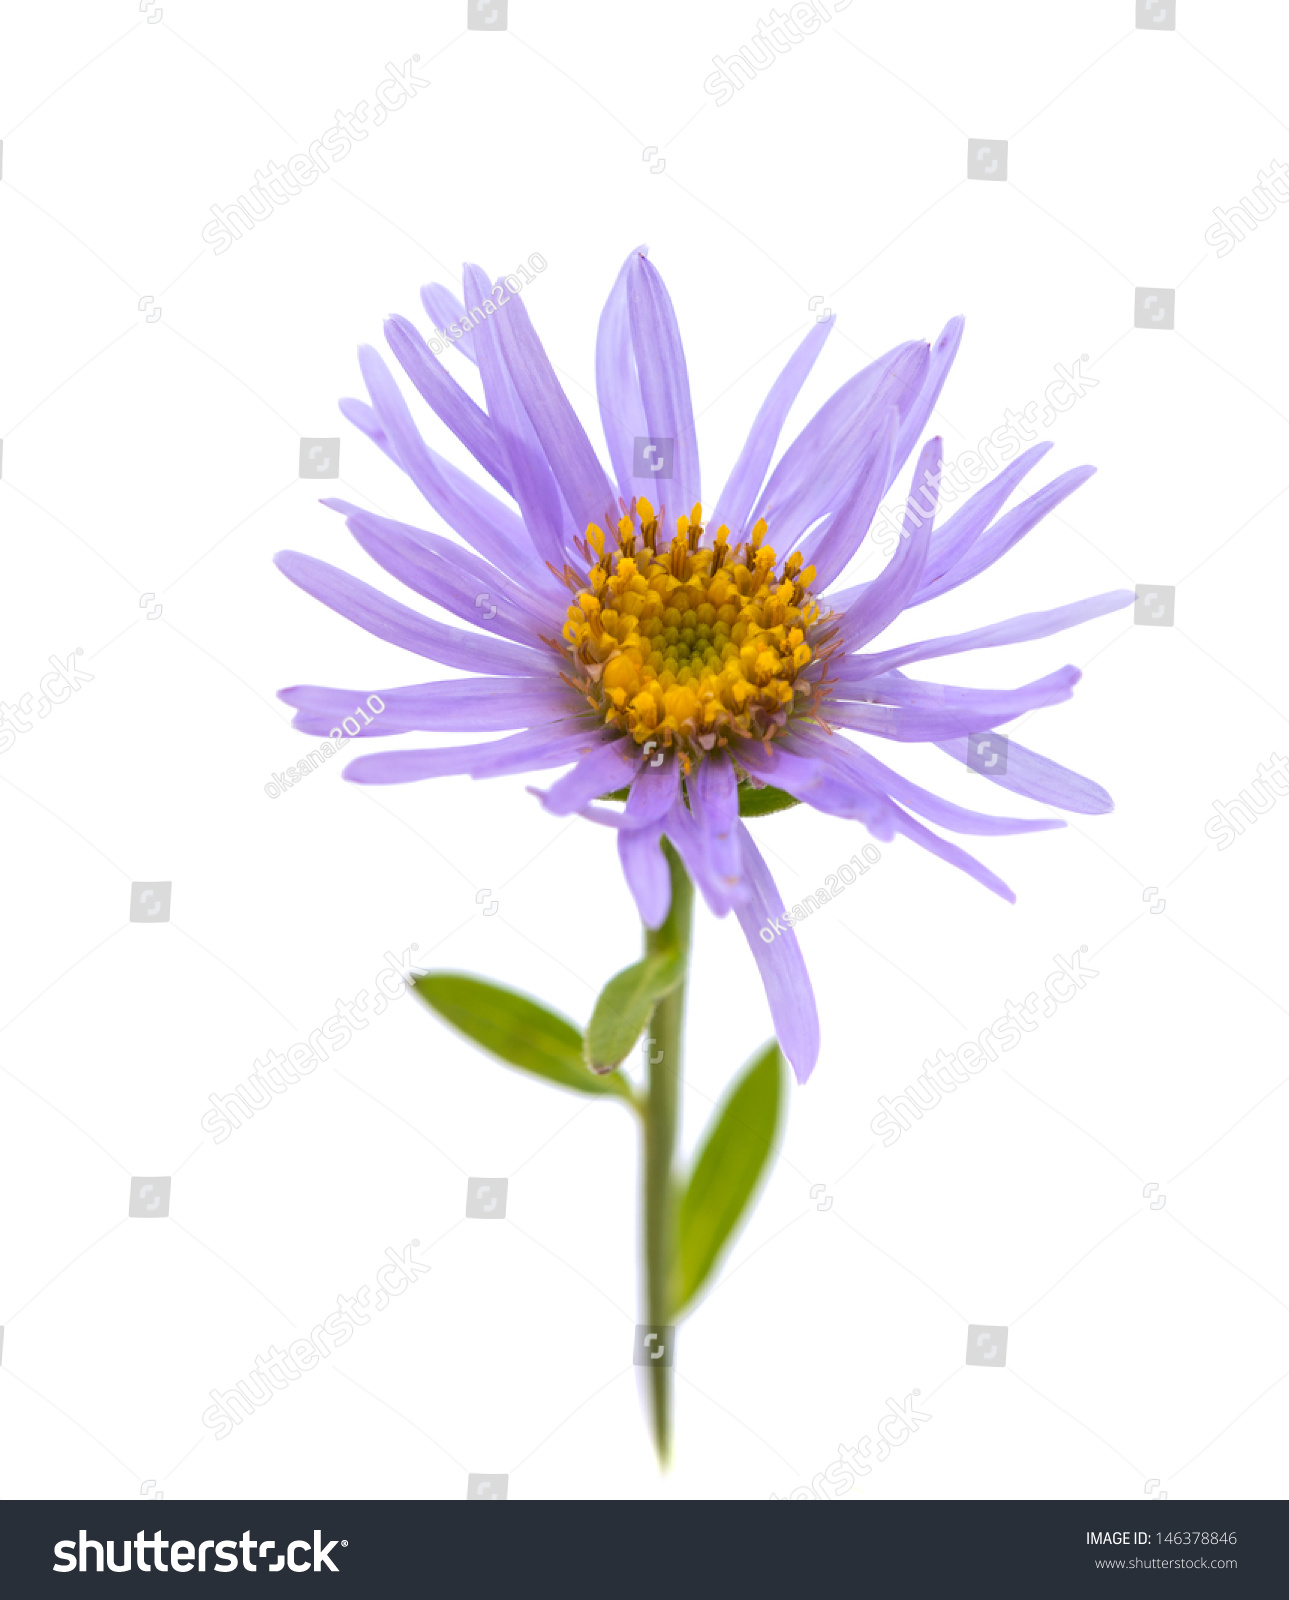 Violet Color Flower Isolated On White Background Ez Canvas